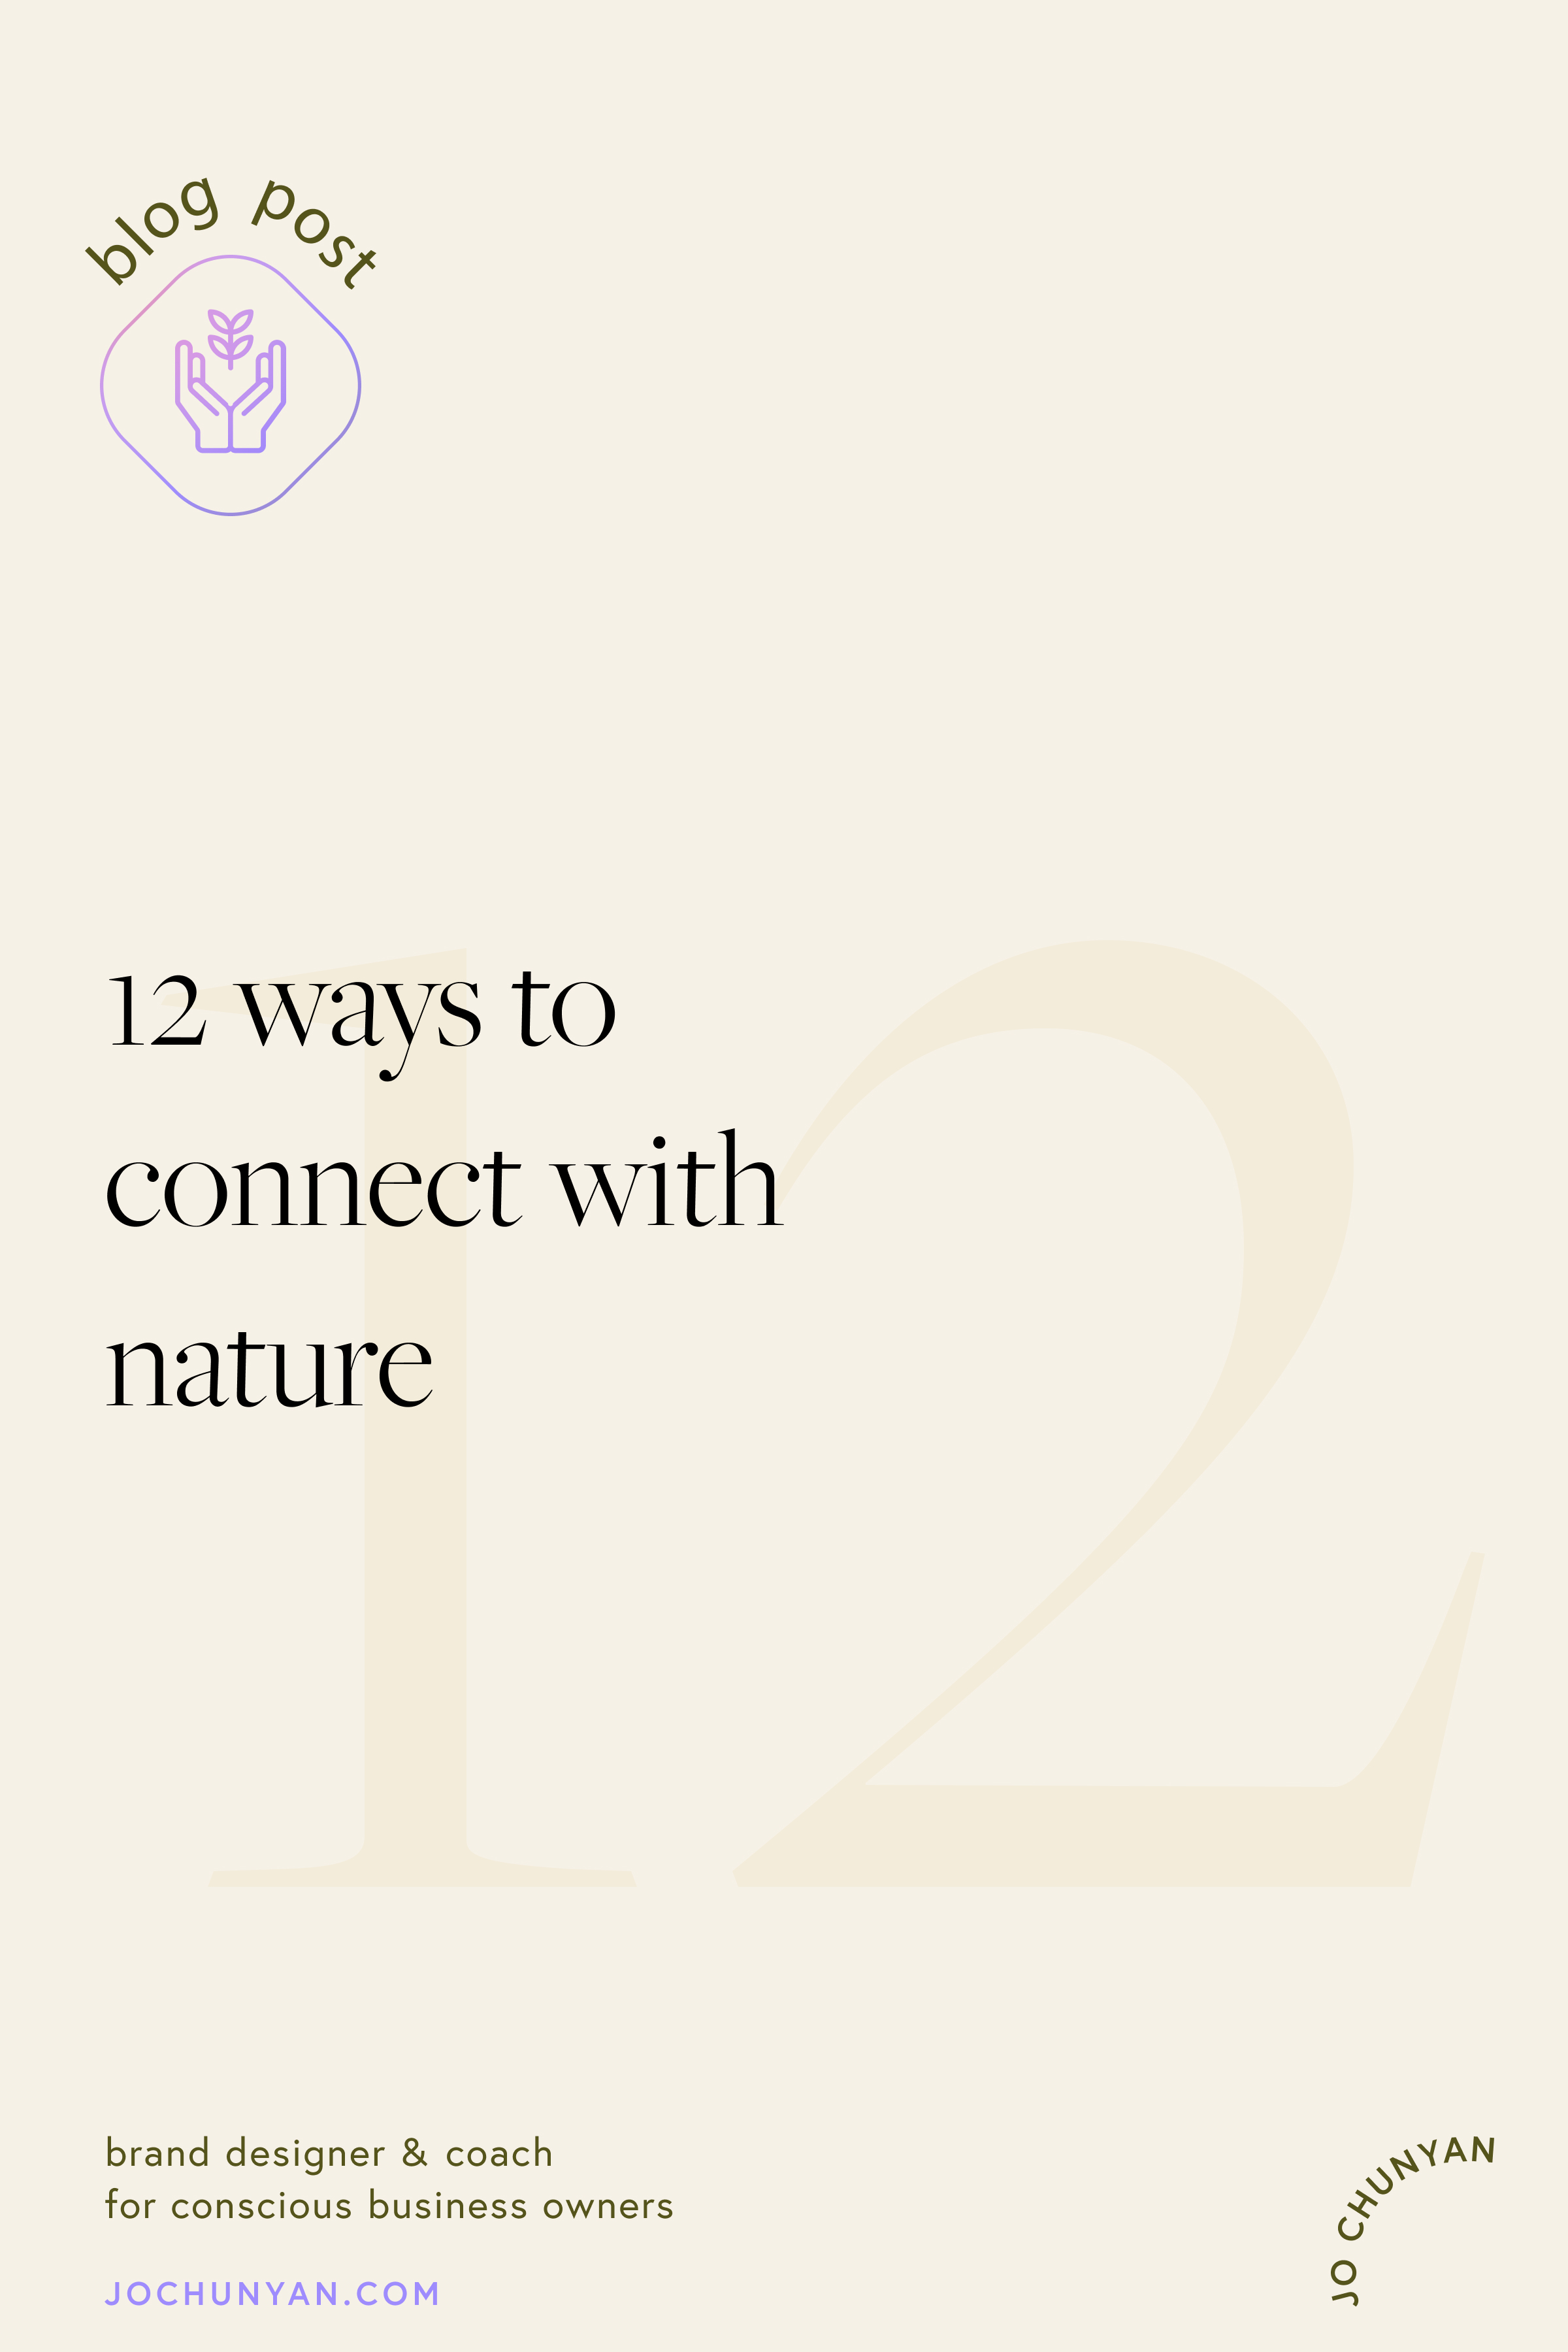 12 ways to connect with nature